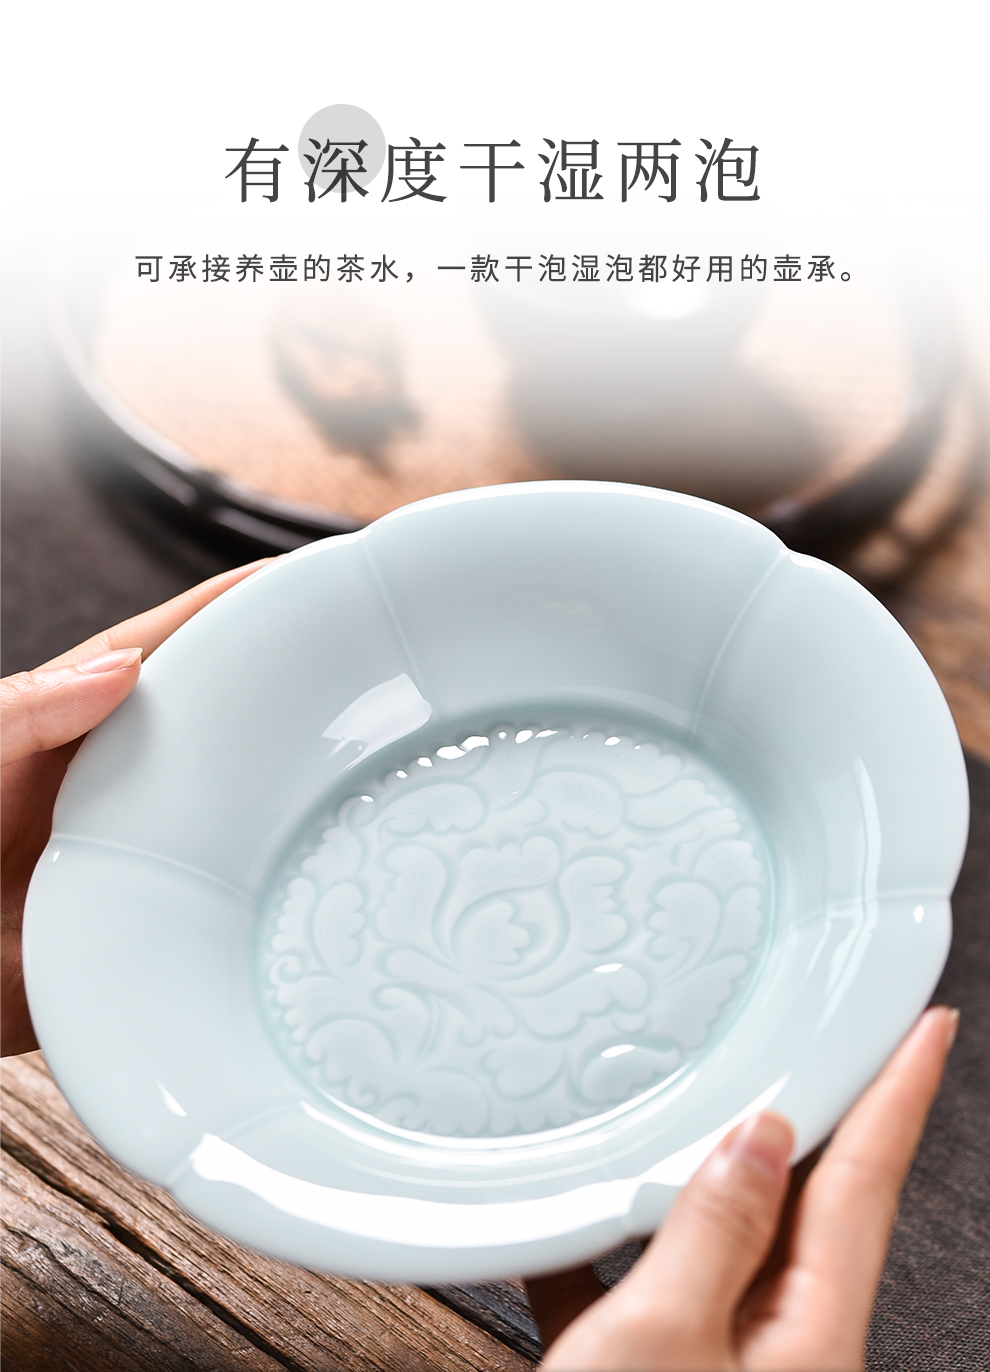 Jingdezhen flagship store shadow oolong tea tray daily household ceramics kwai expressions using pot pot of retainer tray of tea accessories individual